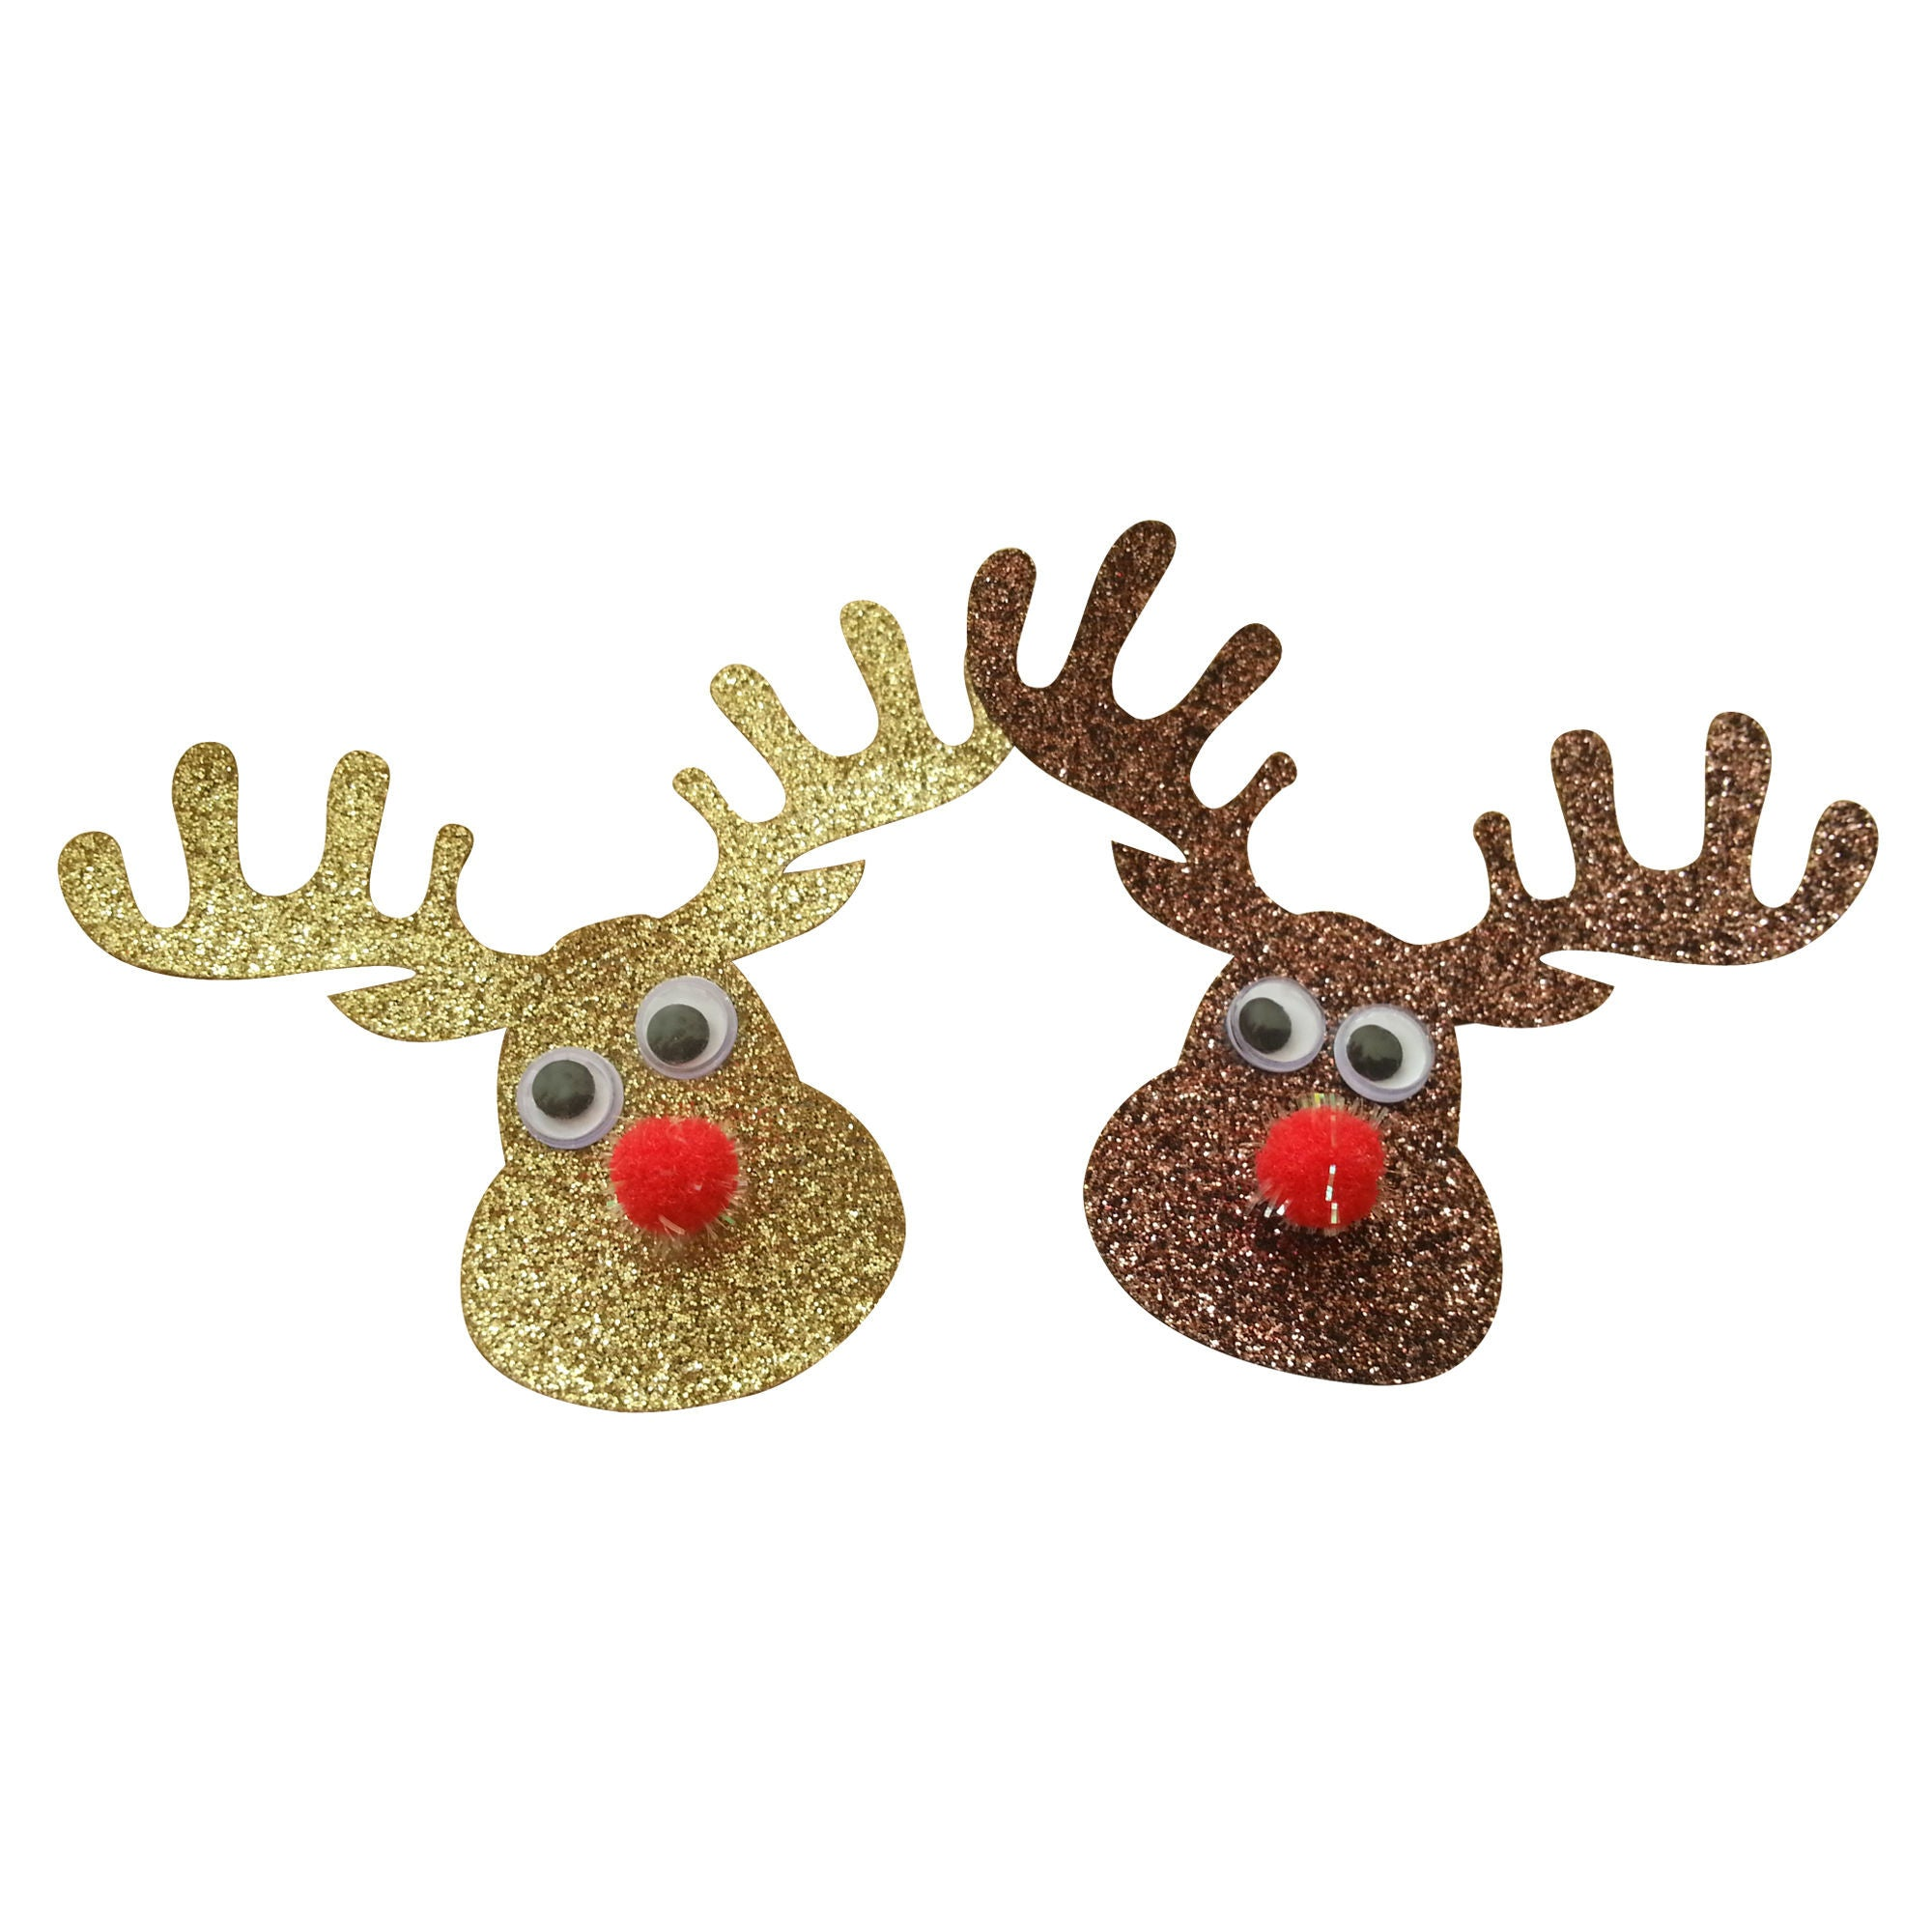 2 craft reindeer with pom pom noses